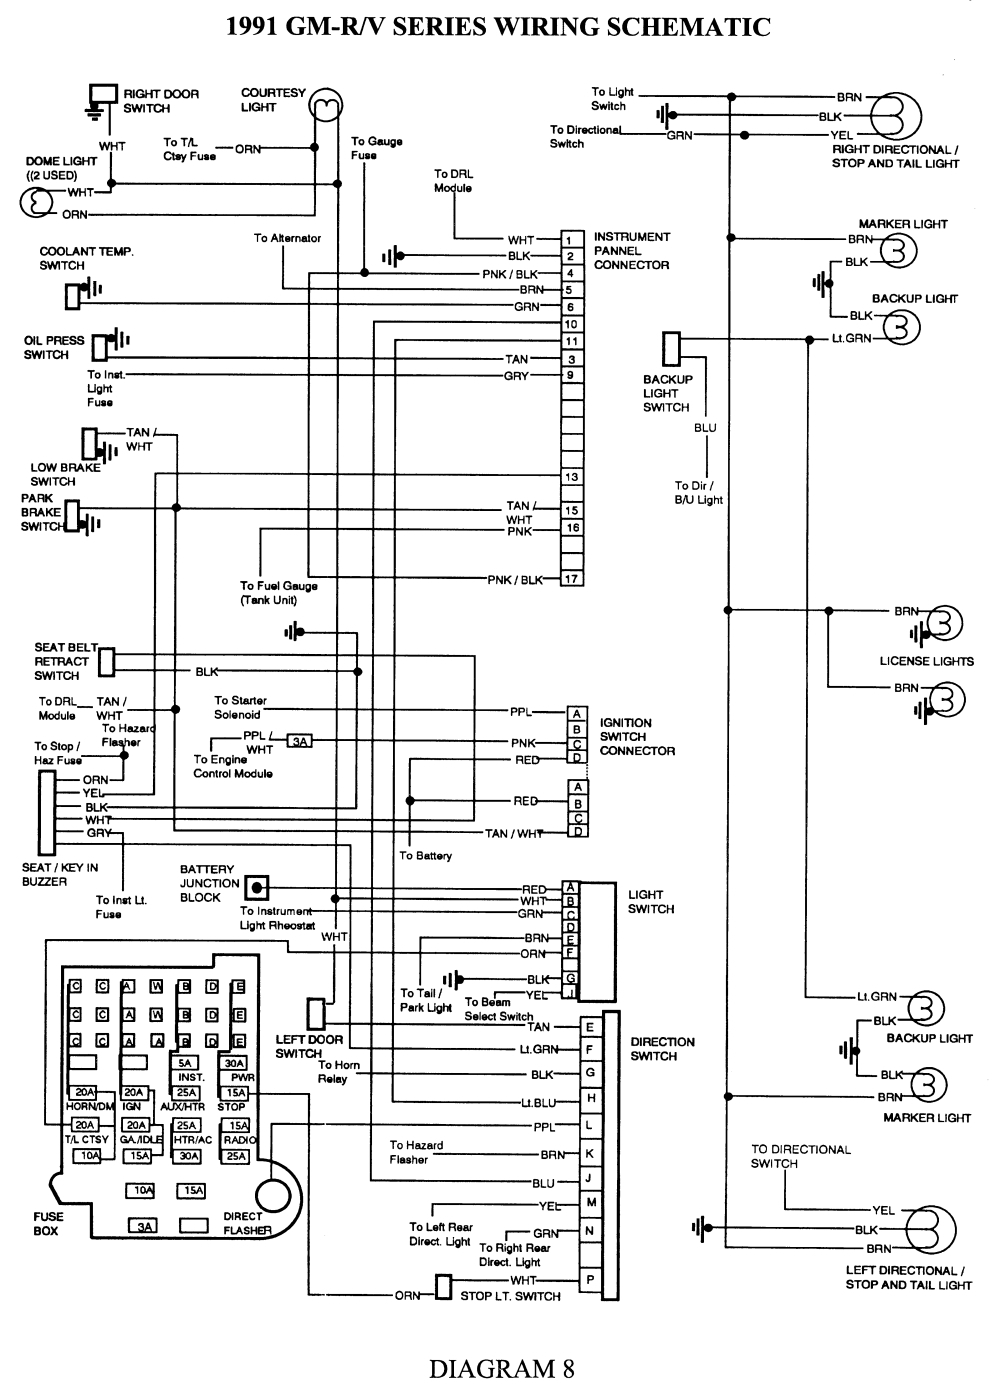 [DIAGRAM] 1985 Chevy S10 Wiring Diagram FULL Version HD